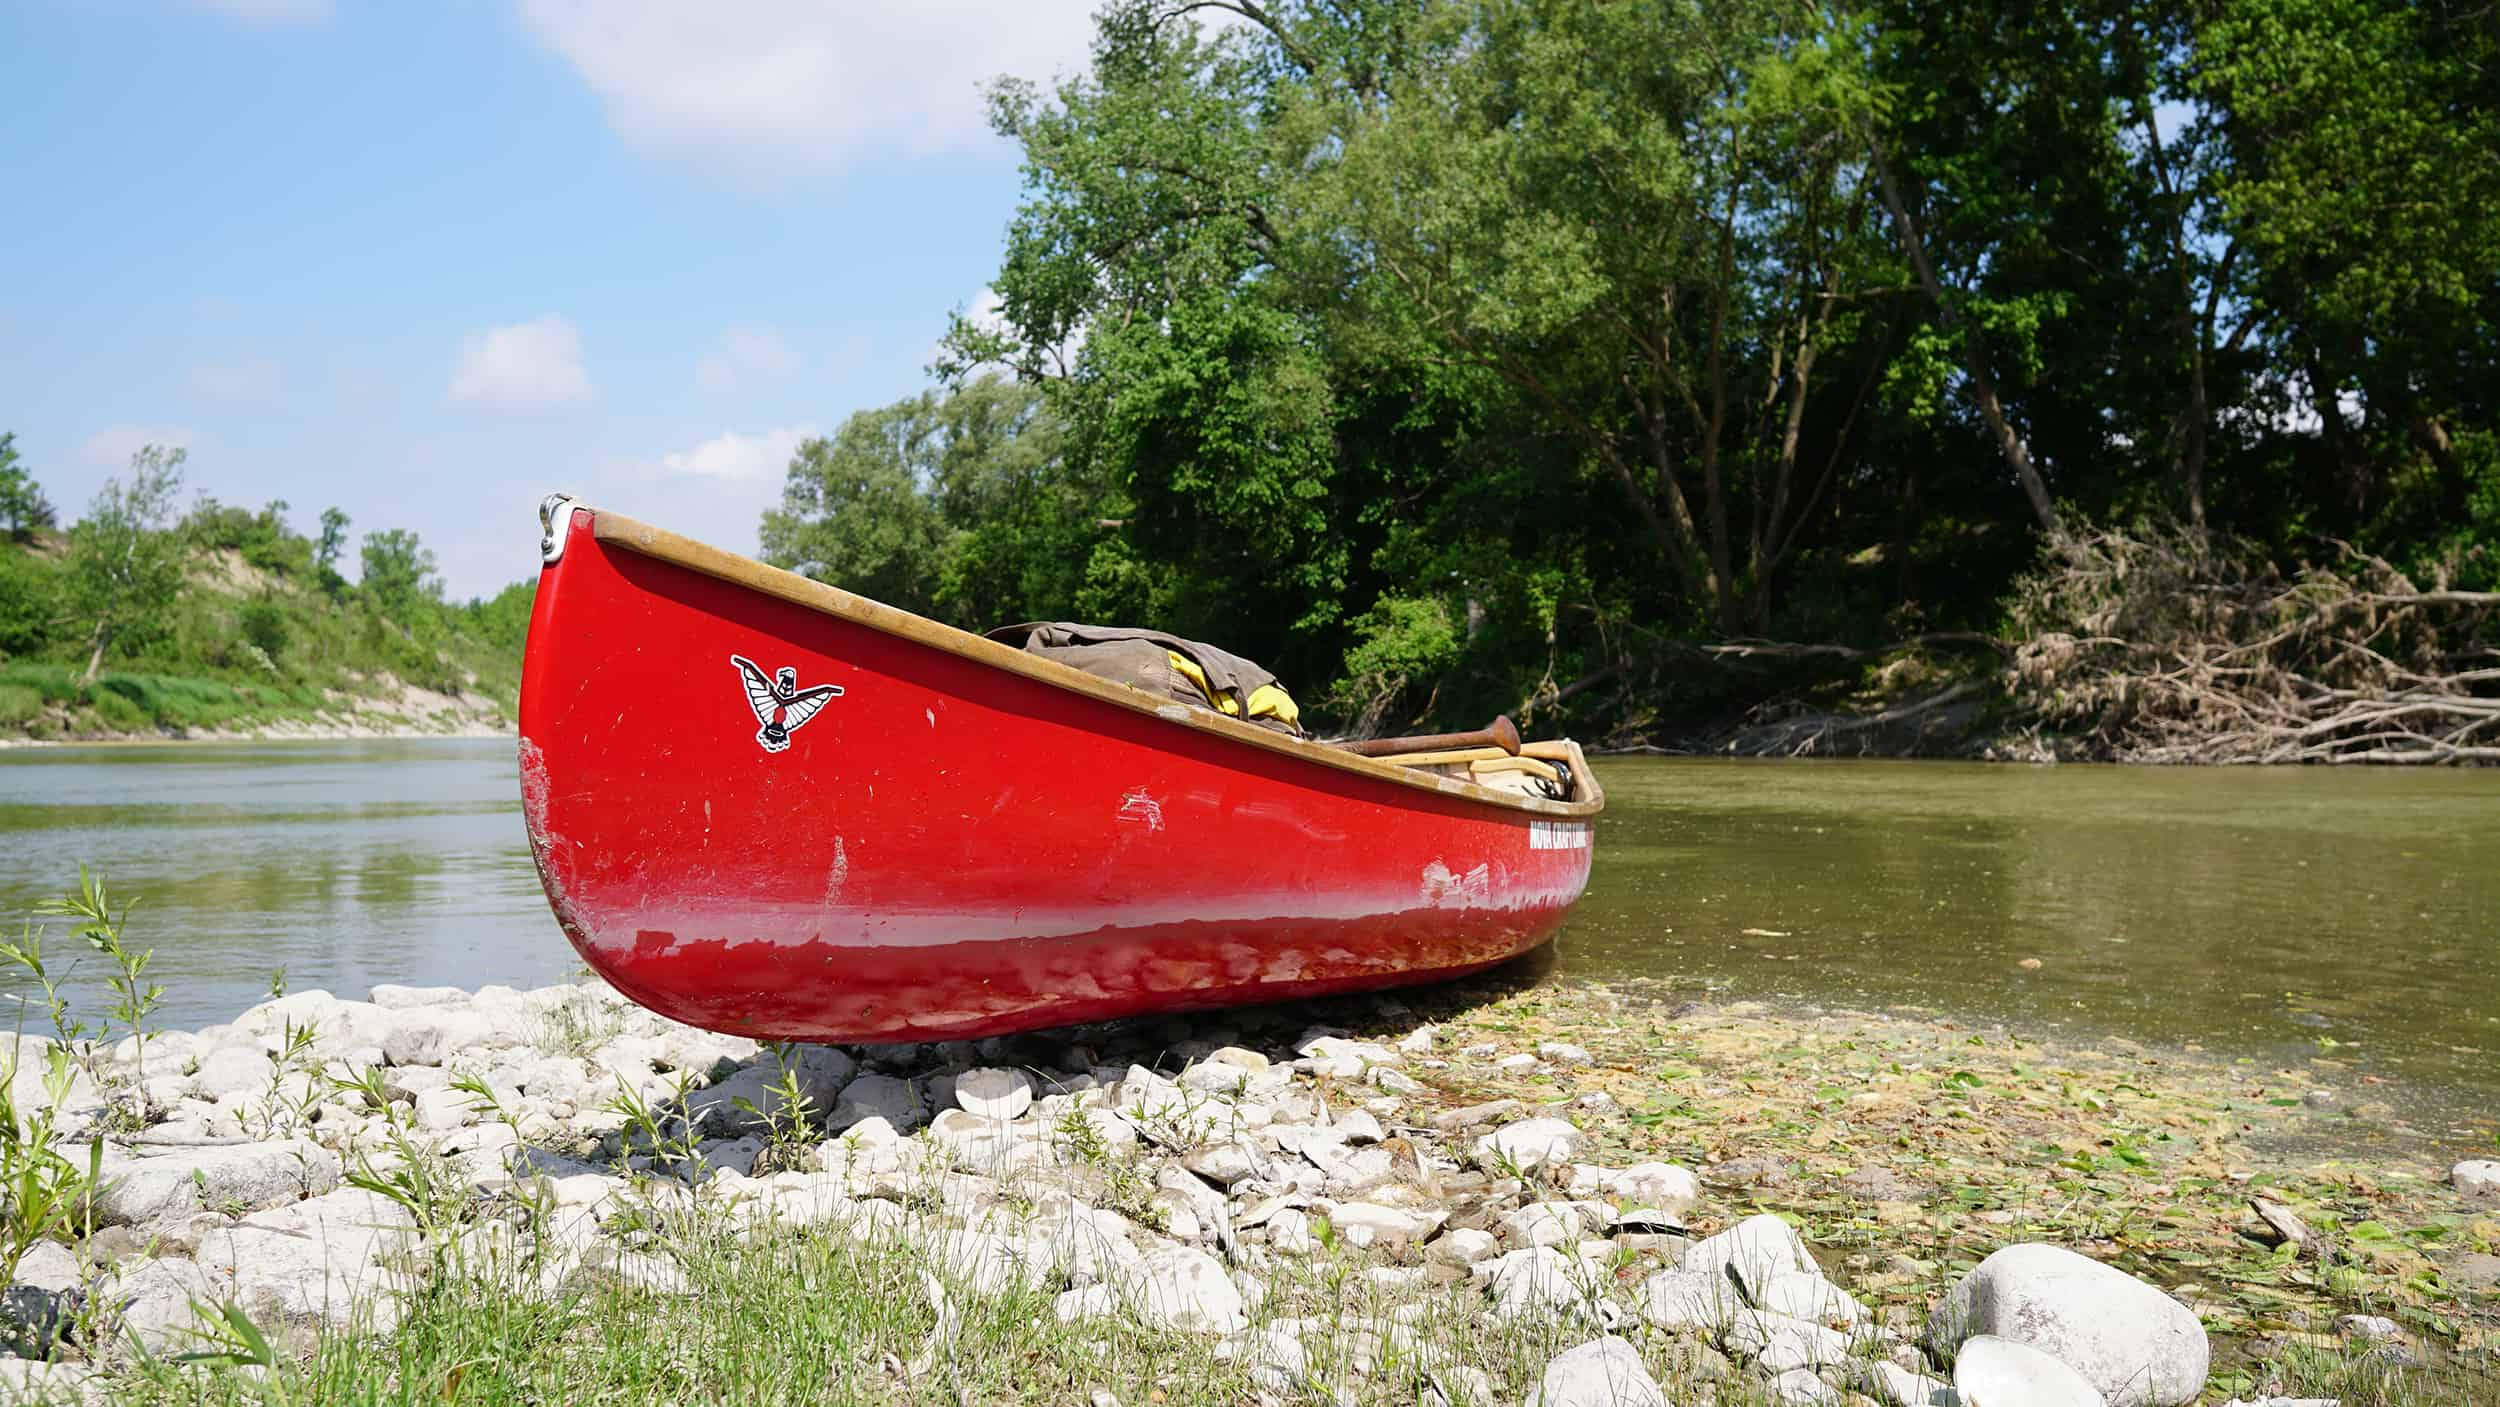 The Happy Camper: New Owner for Nova Craft Canoe